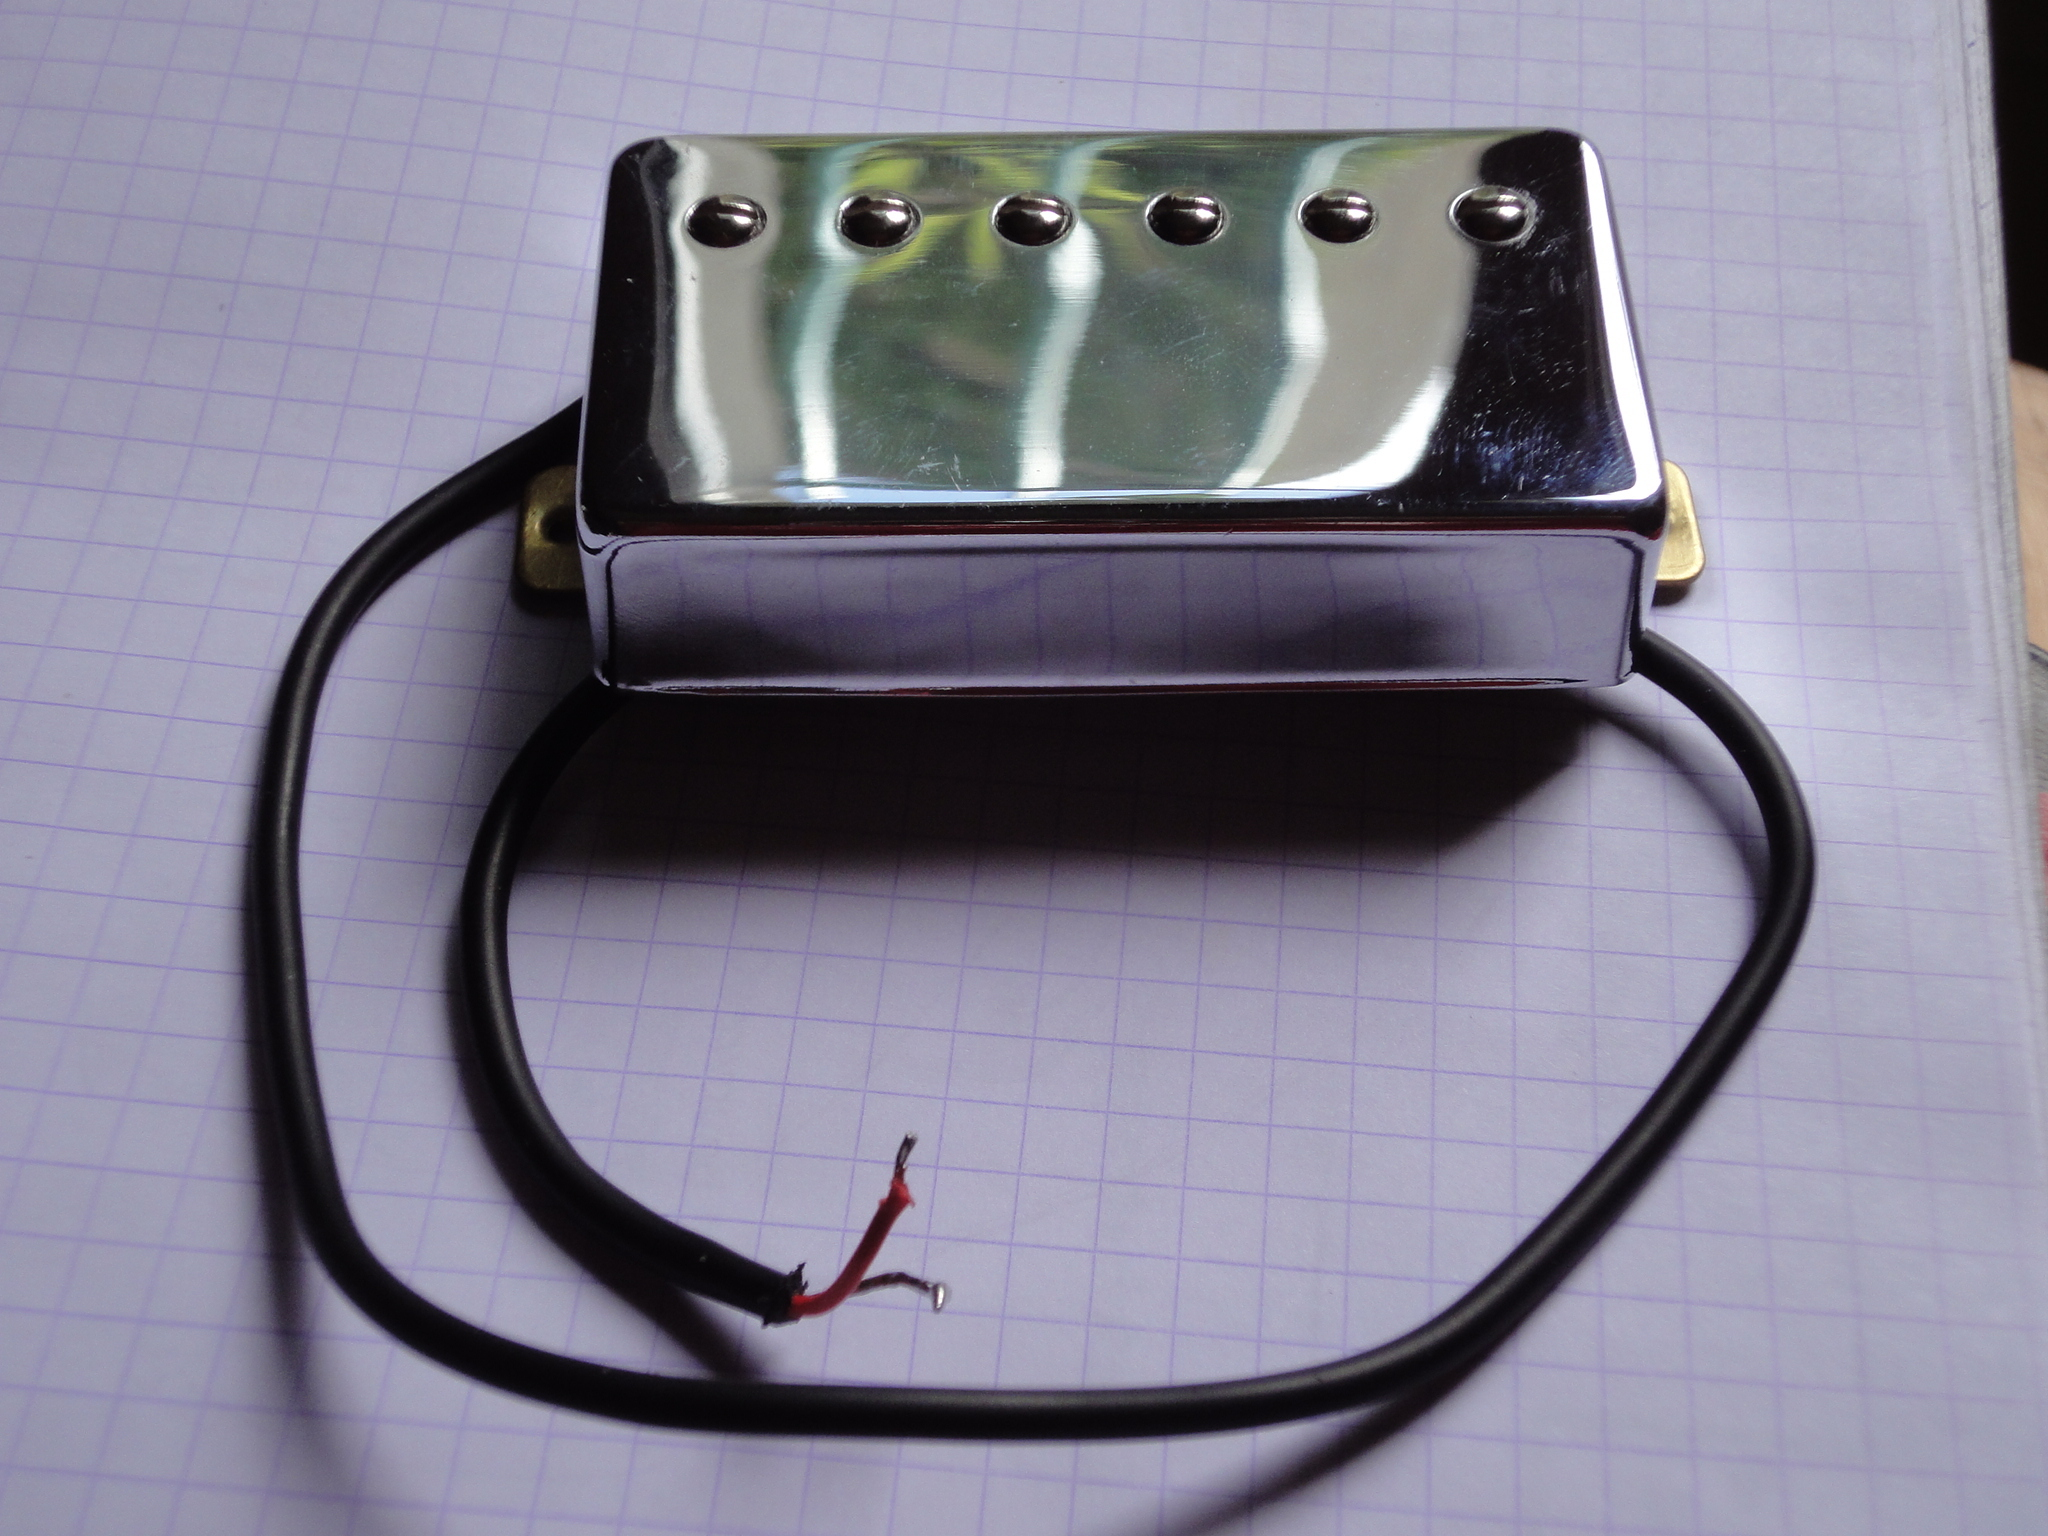 ibanez humbucker otoring com comfortable boiler diagram big wiring diagram for 150cc scooter flat stratocaster wiring mods ibanez gio wiring